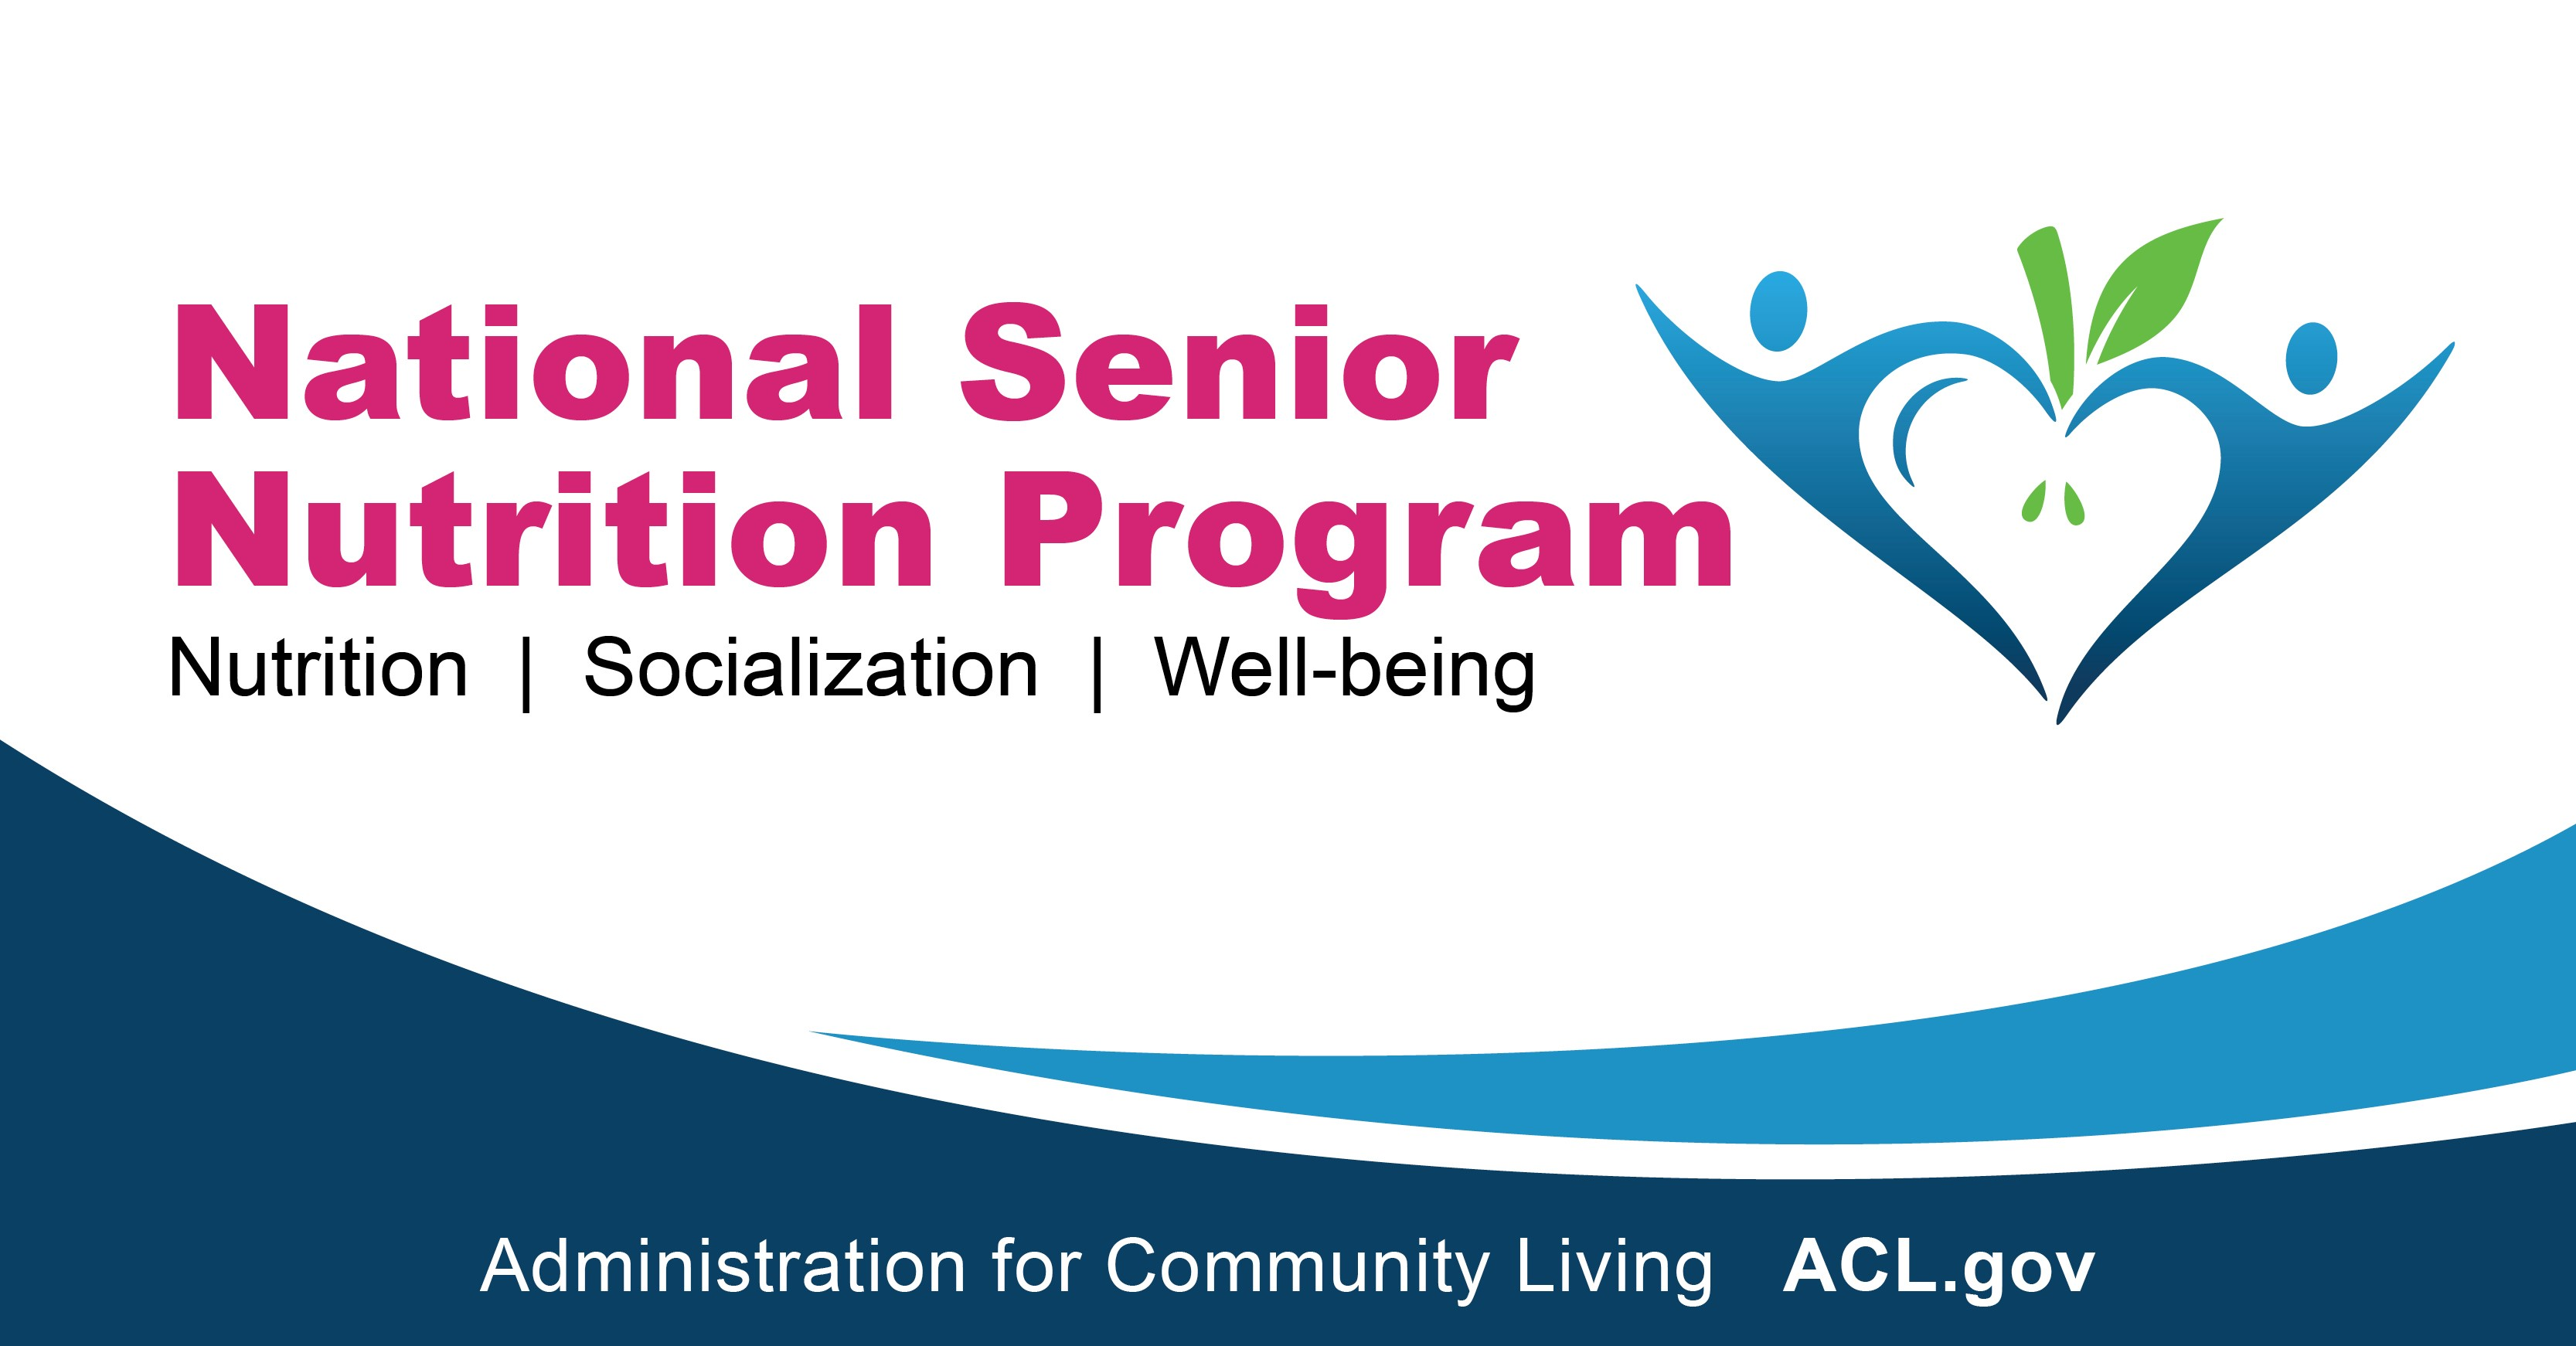 National Senior Nutrition Program Graphic